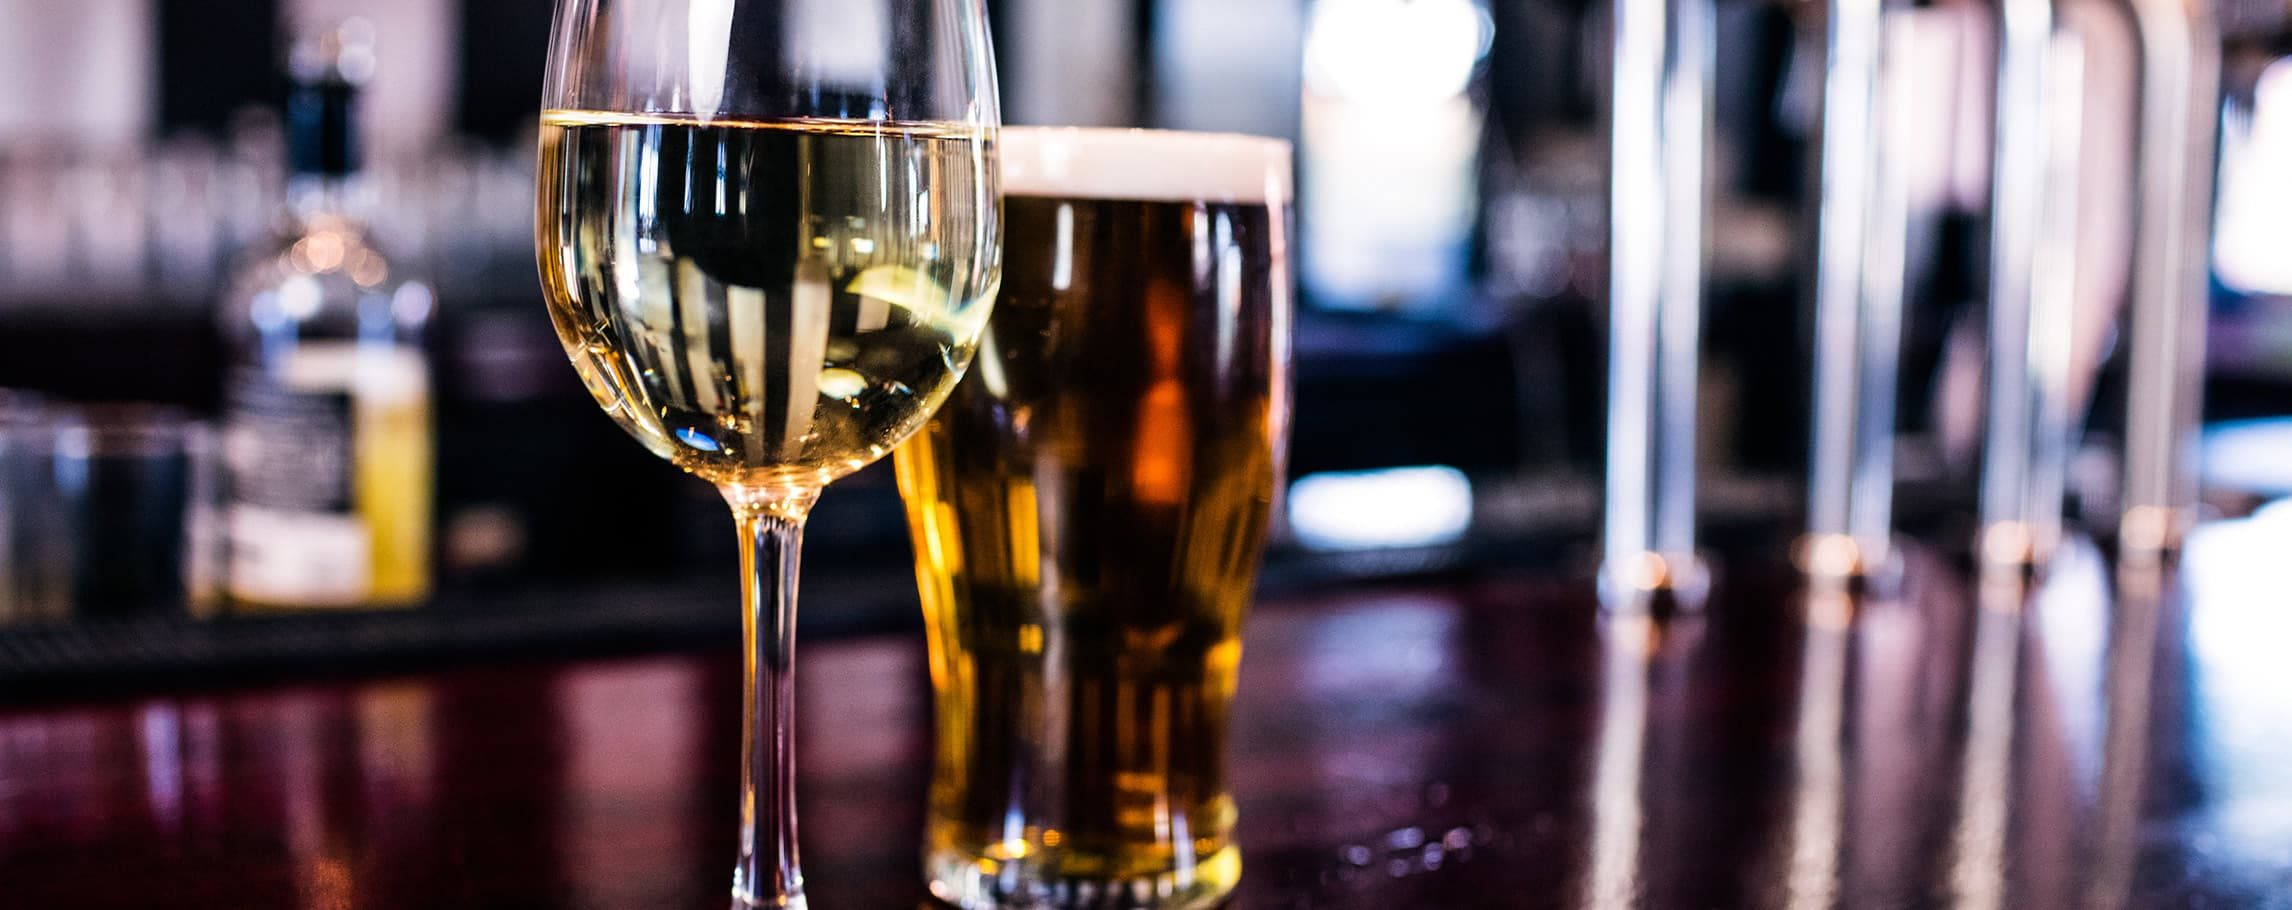 glass of wine and beer at the bar at a restaurant